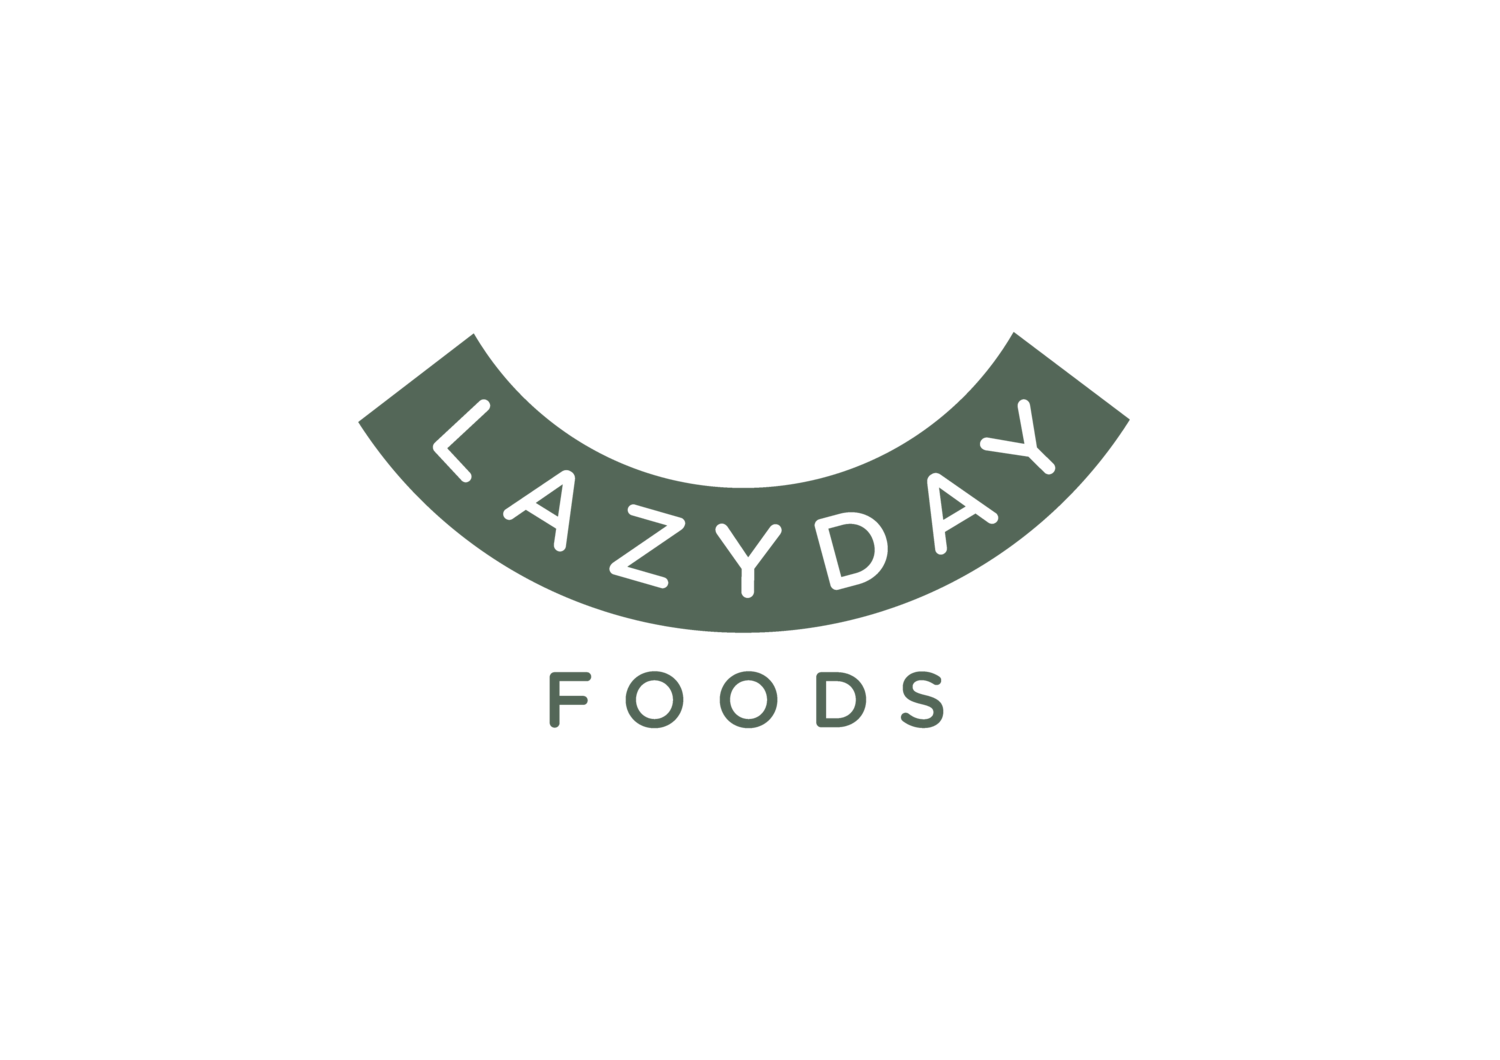 Lazy Day Foods